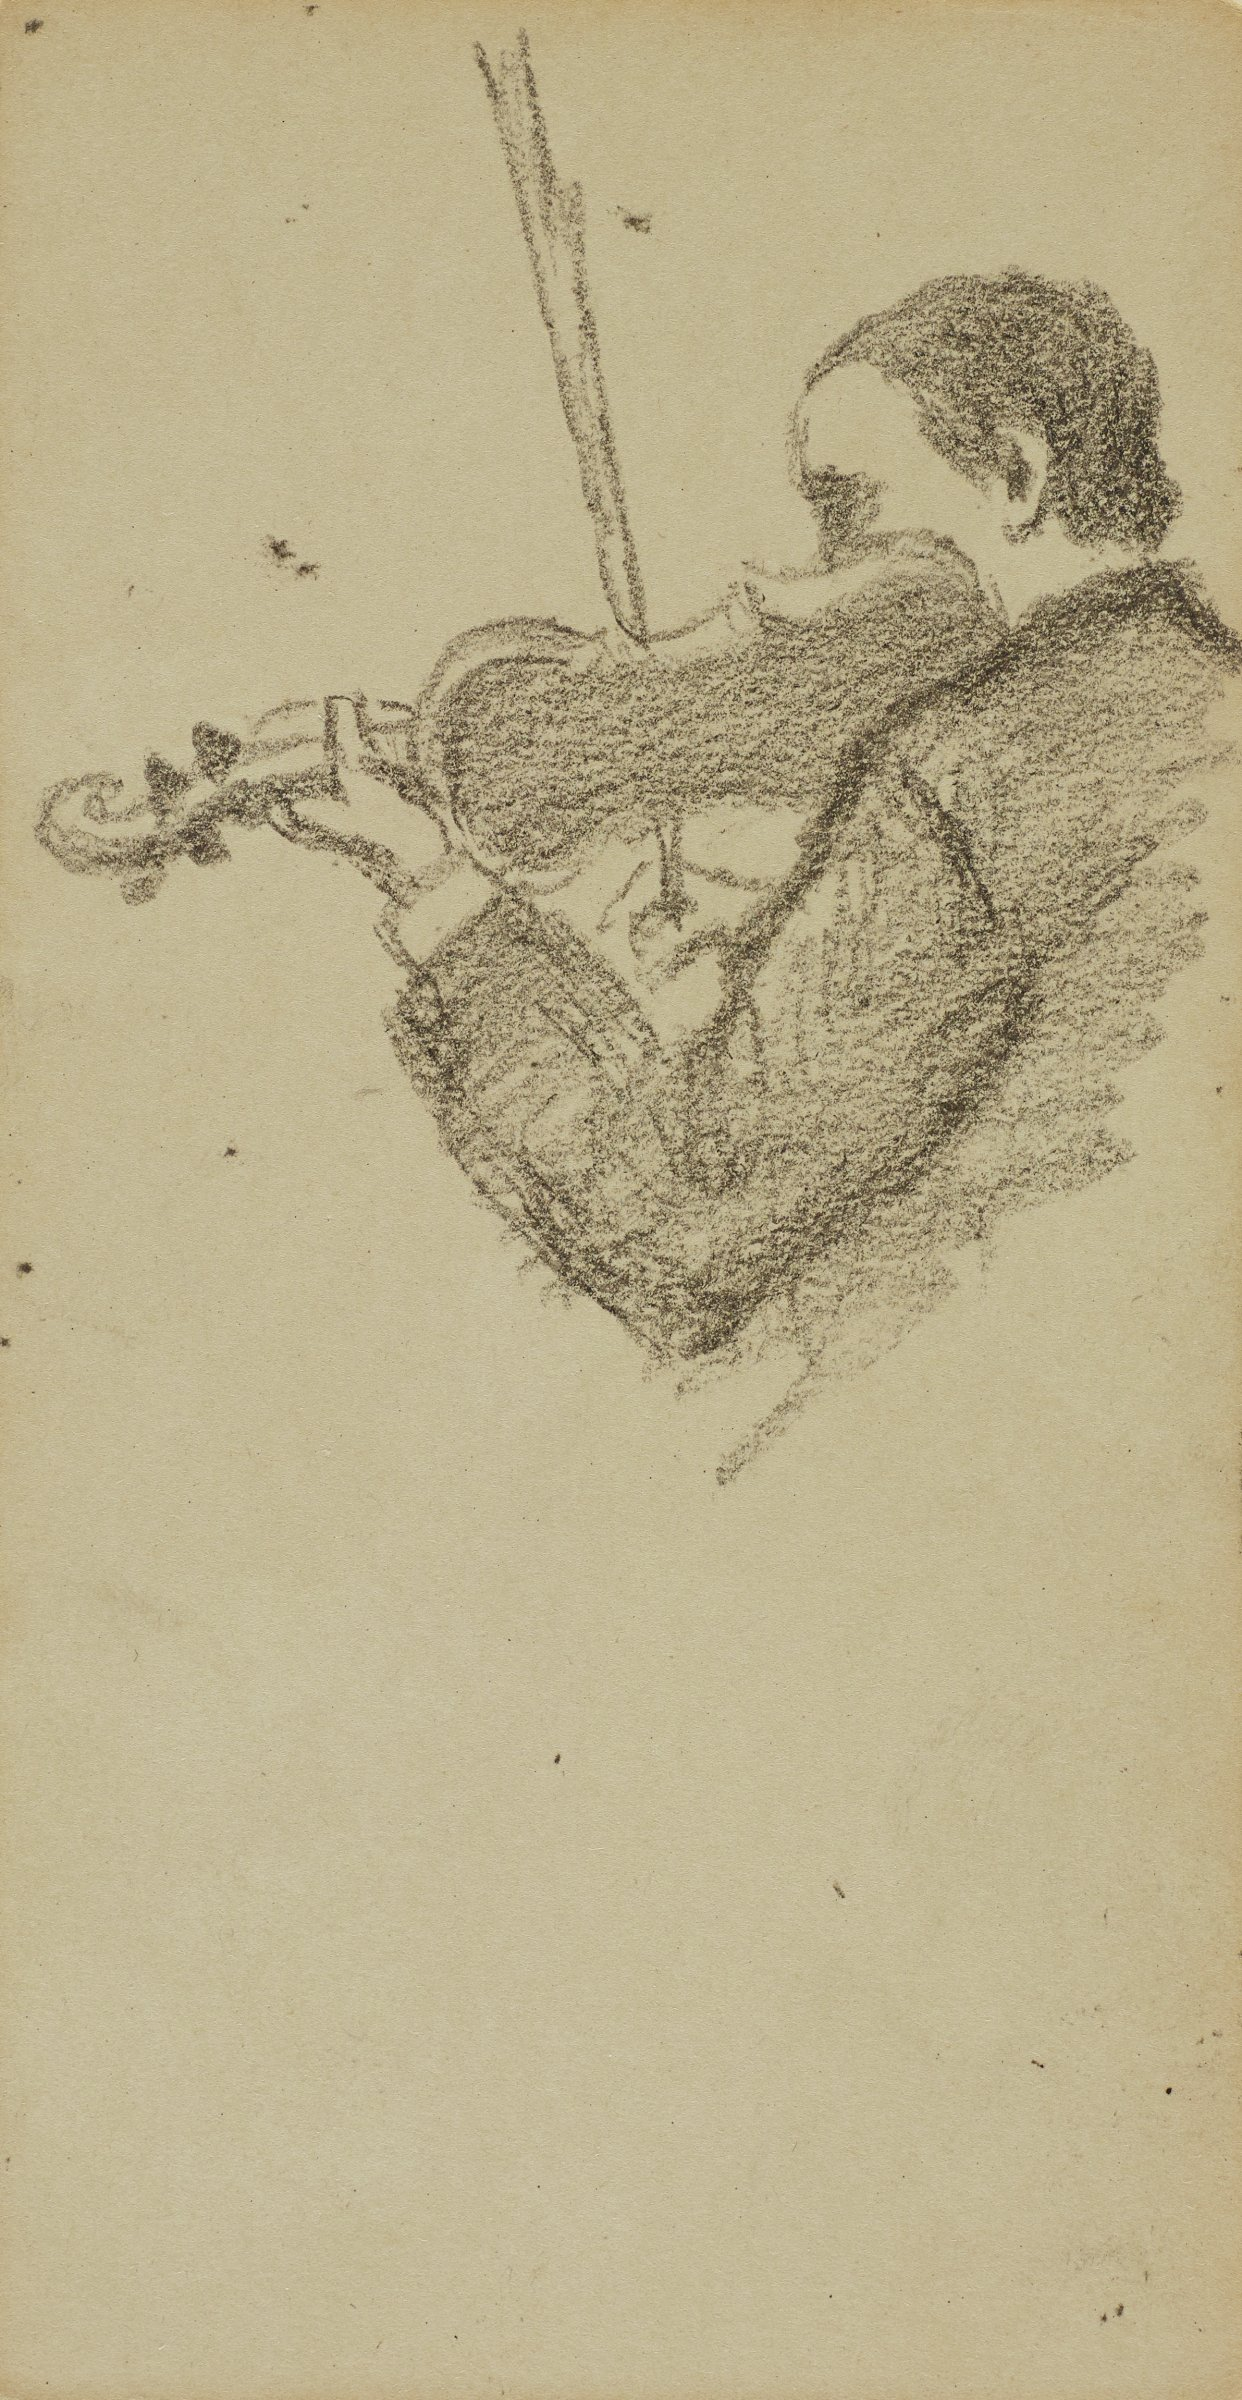 This pencil drawing represents a bust-length portrait of violinist facing left. He is holding the neck of his violin with his left hand and his bow in his right.